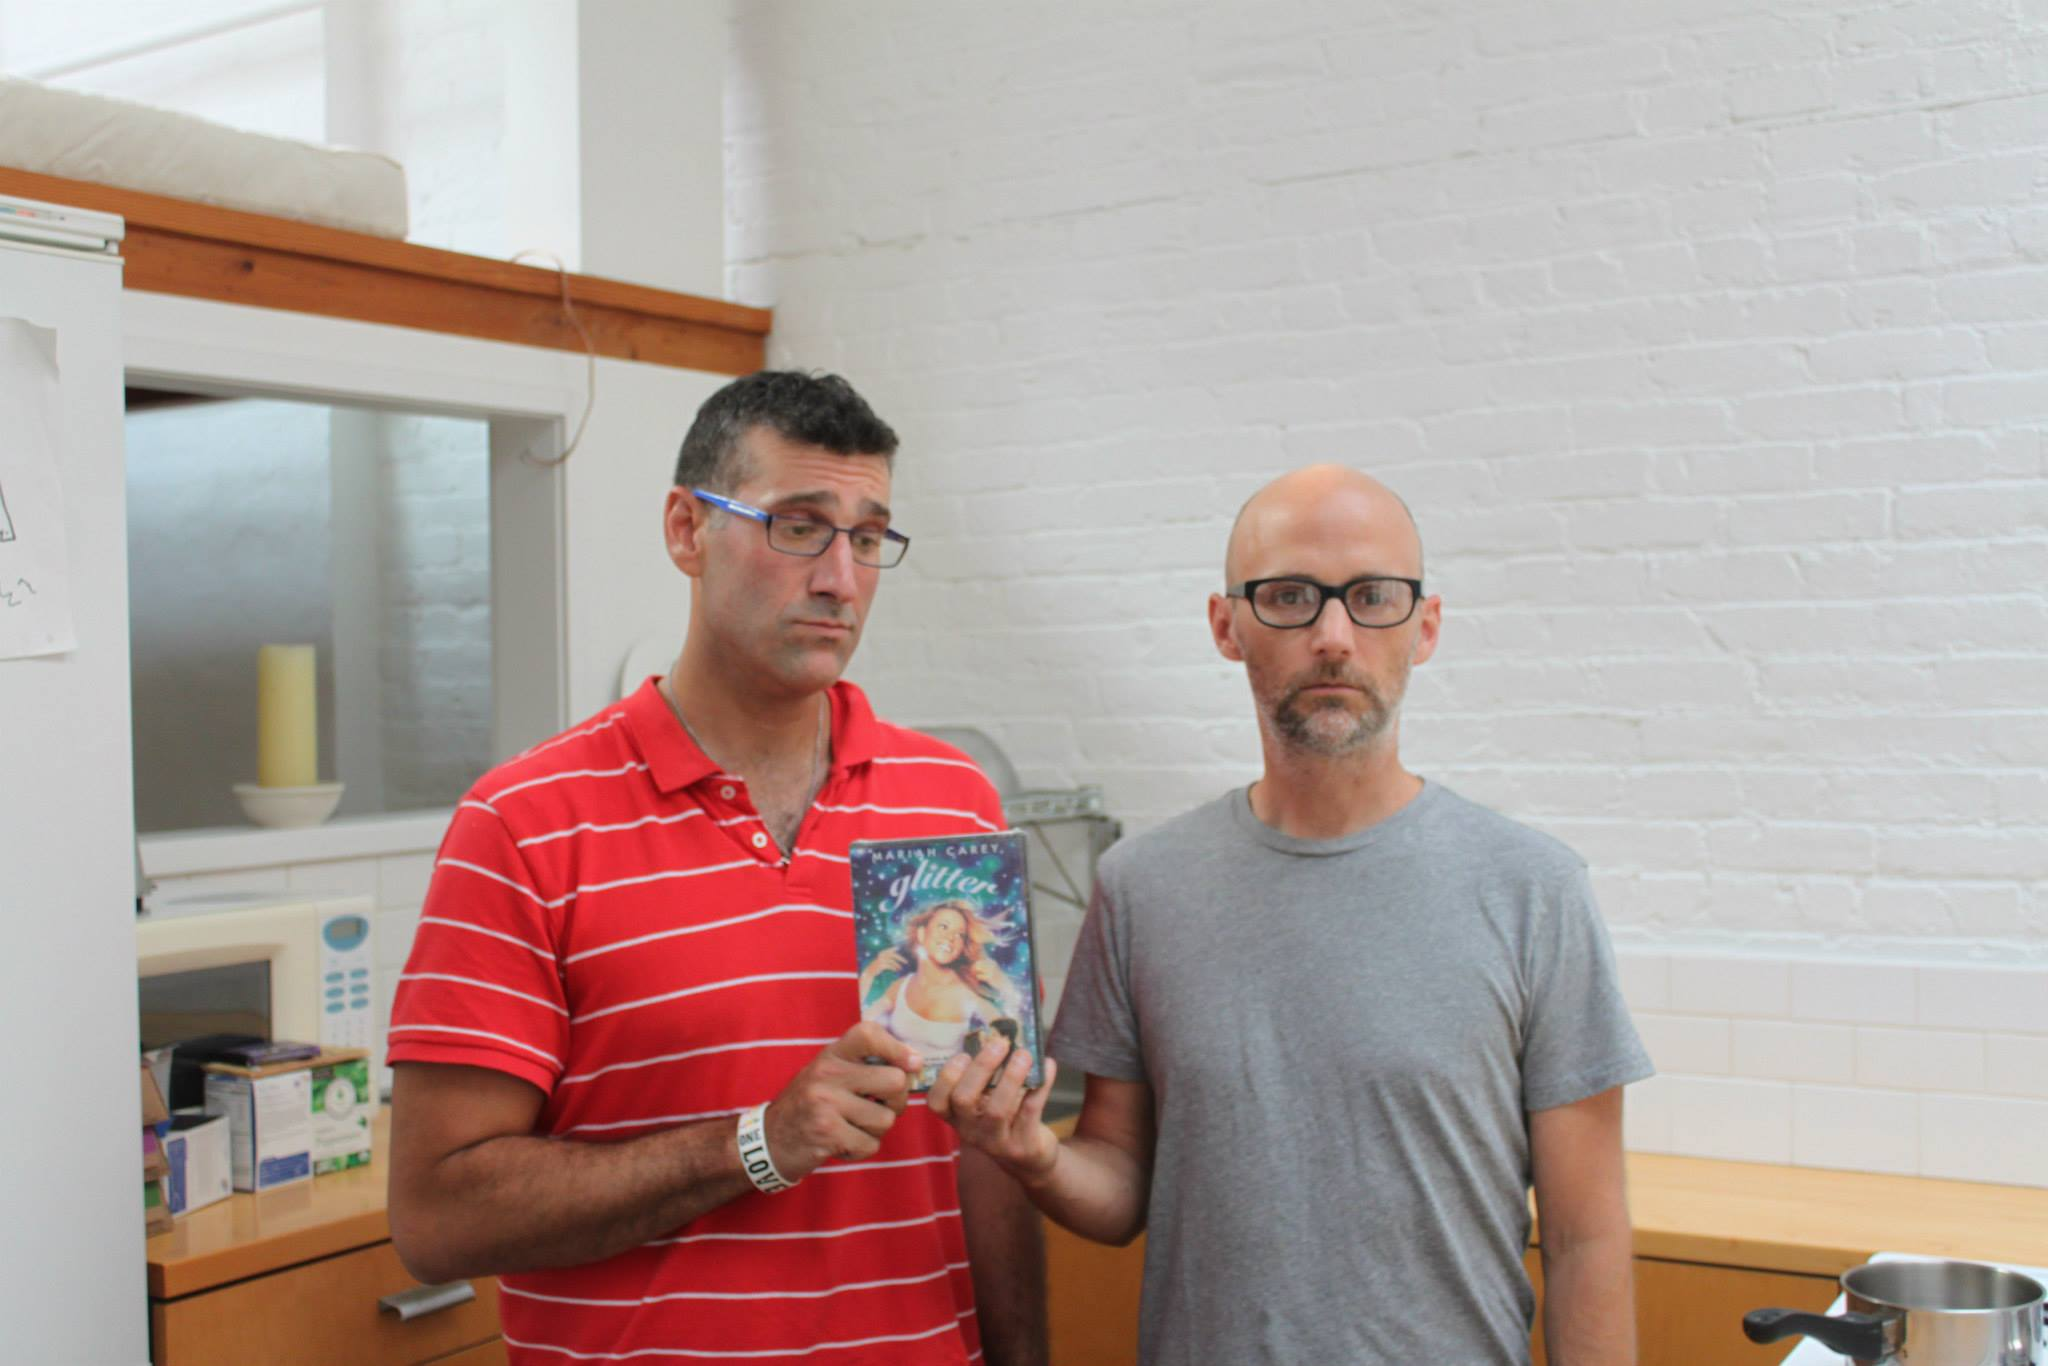 a sides interview moby discusses new album music videos and a sides interview moby discusses new album music videos and lorde s royals